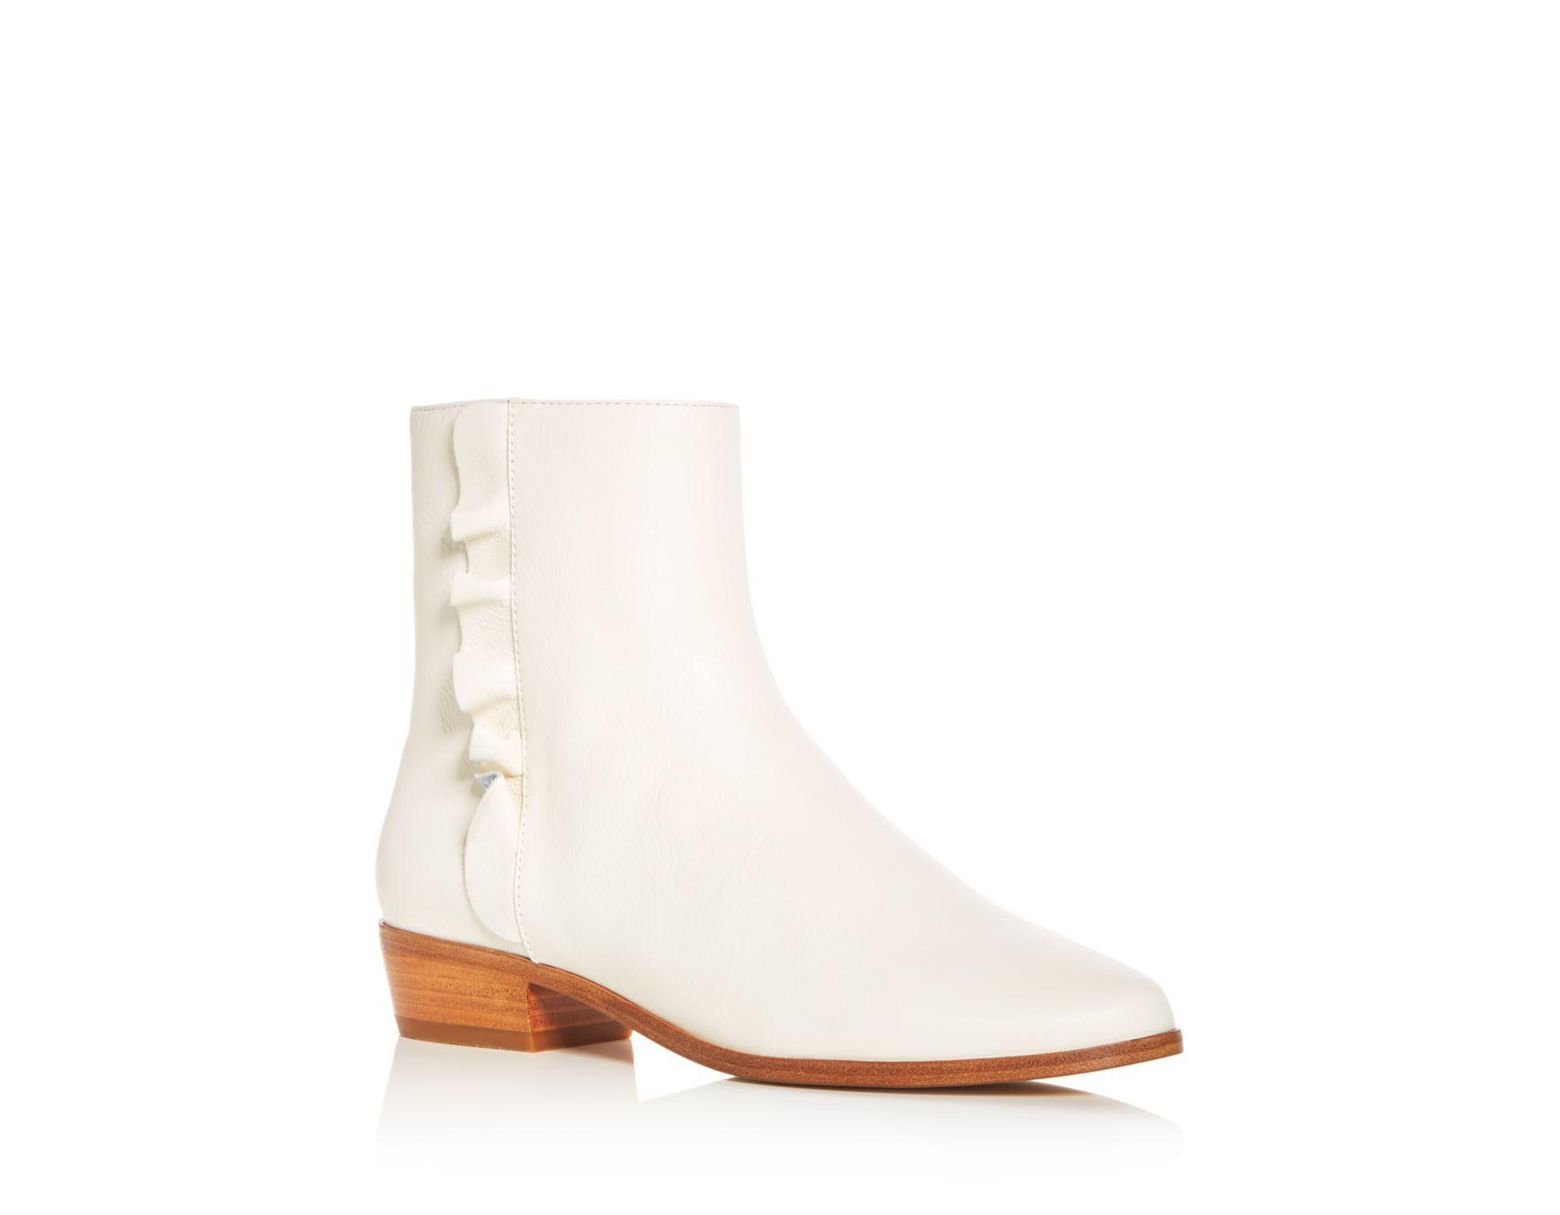 389373def954 Joie Women's Laleh Ruffle Leather Booties in White - Lyst